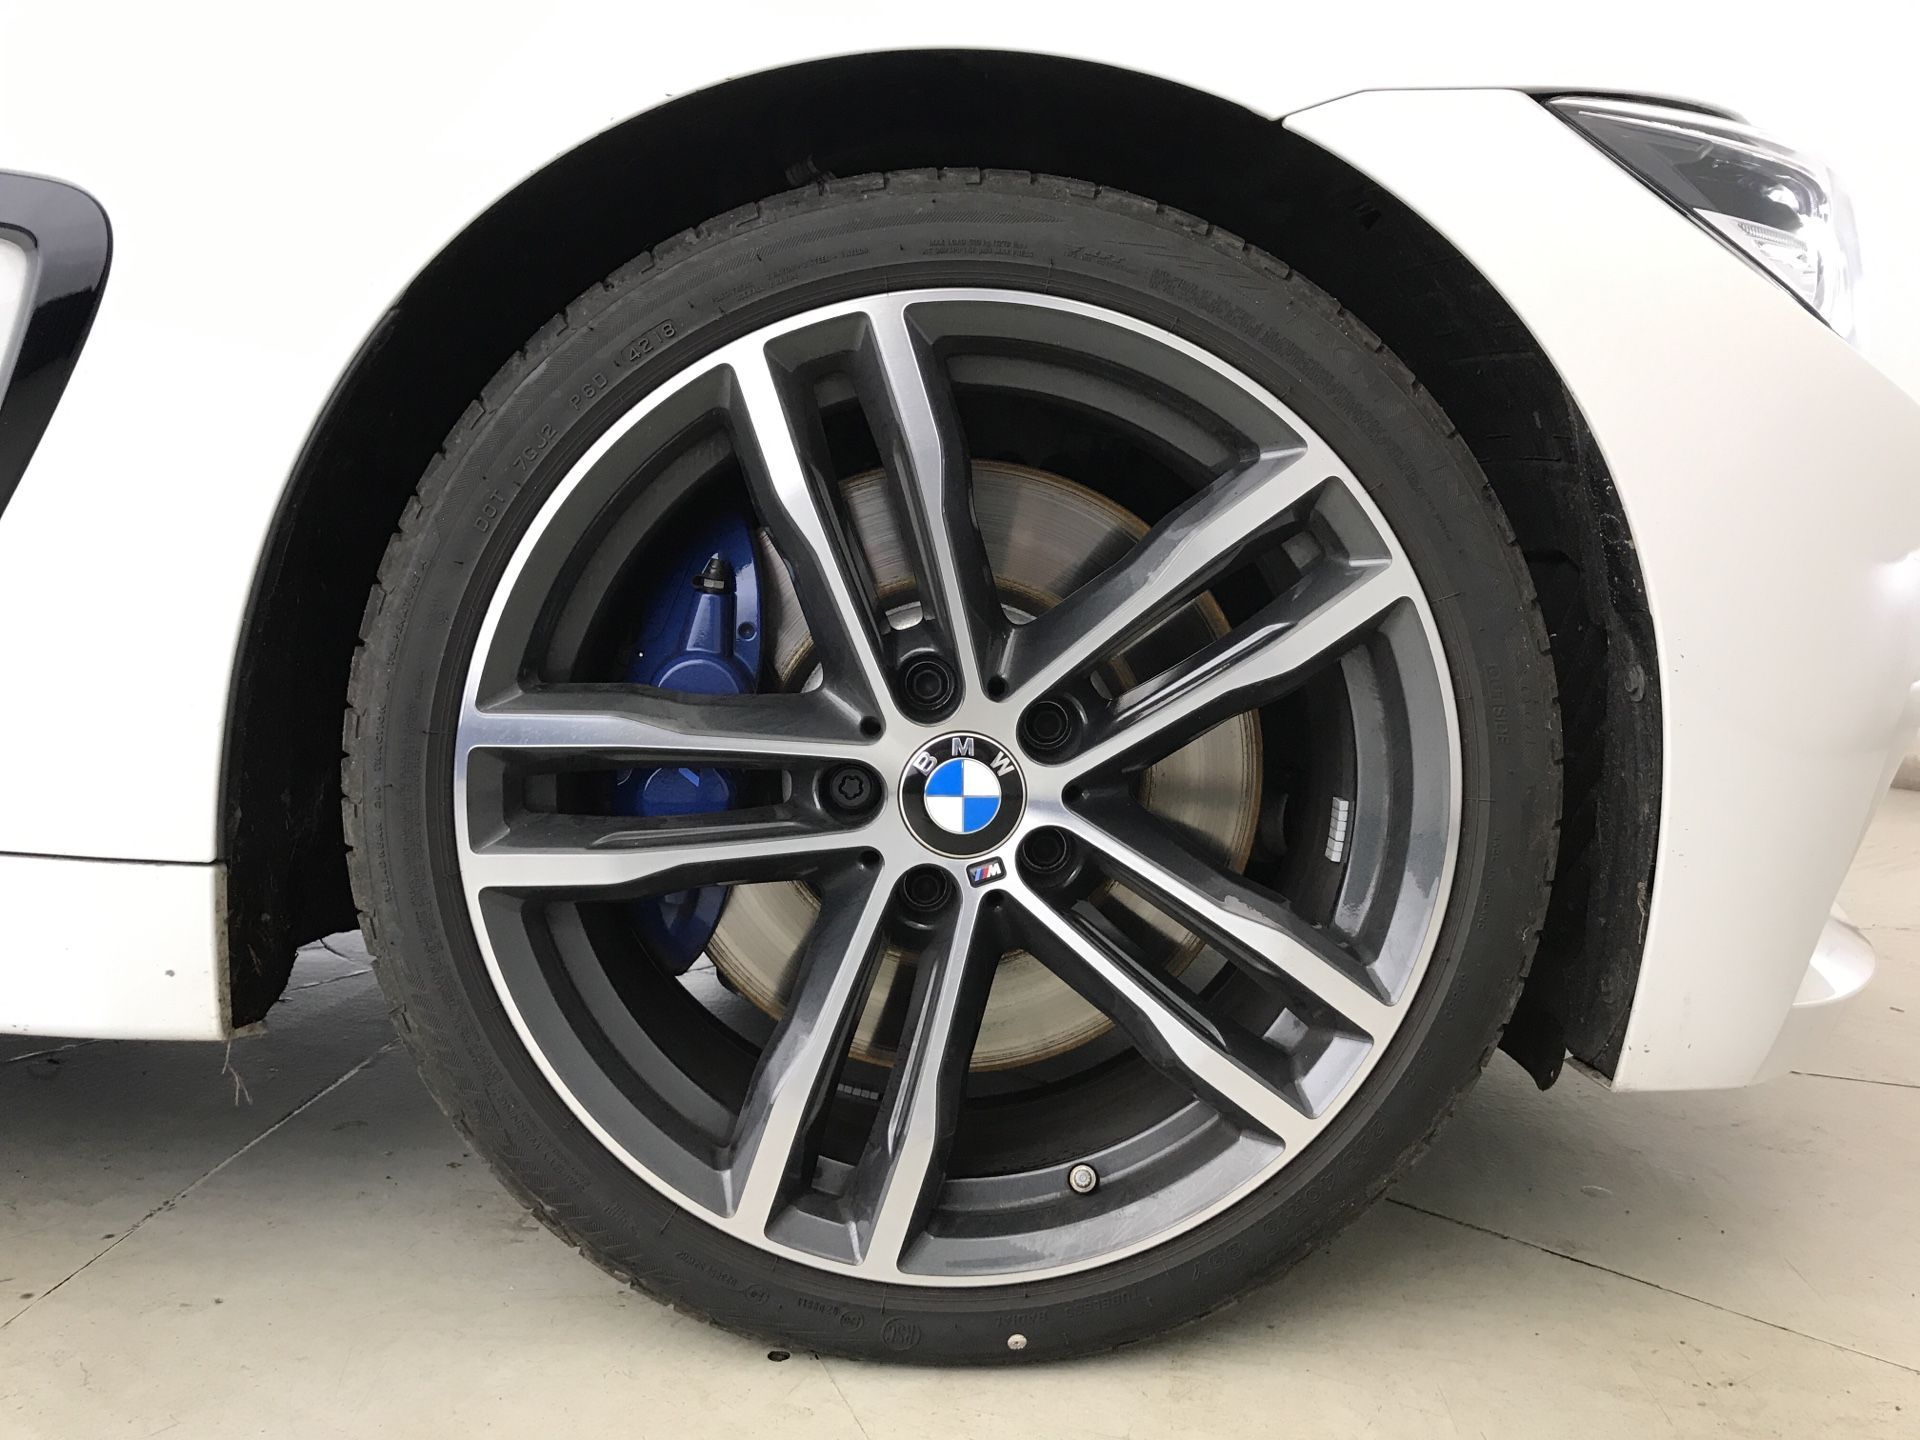 Image 7 - BMW 430d M Sport Coupe (YE19CCD)